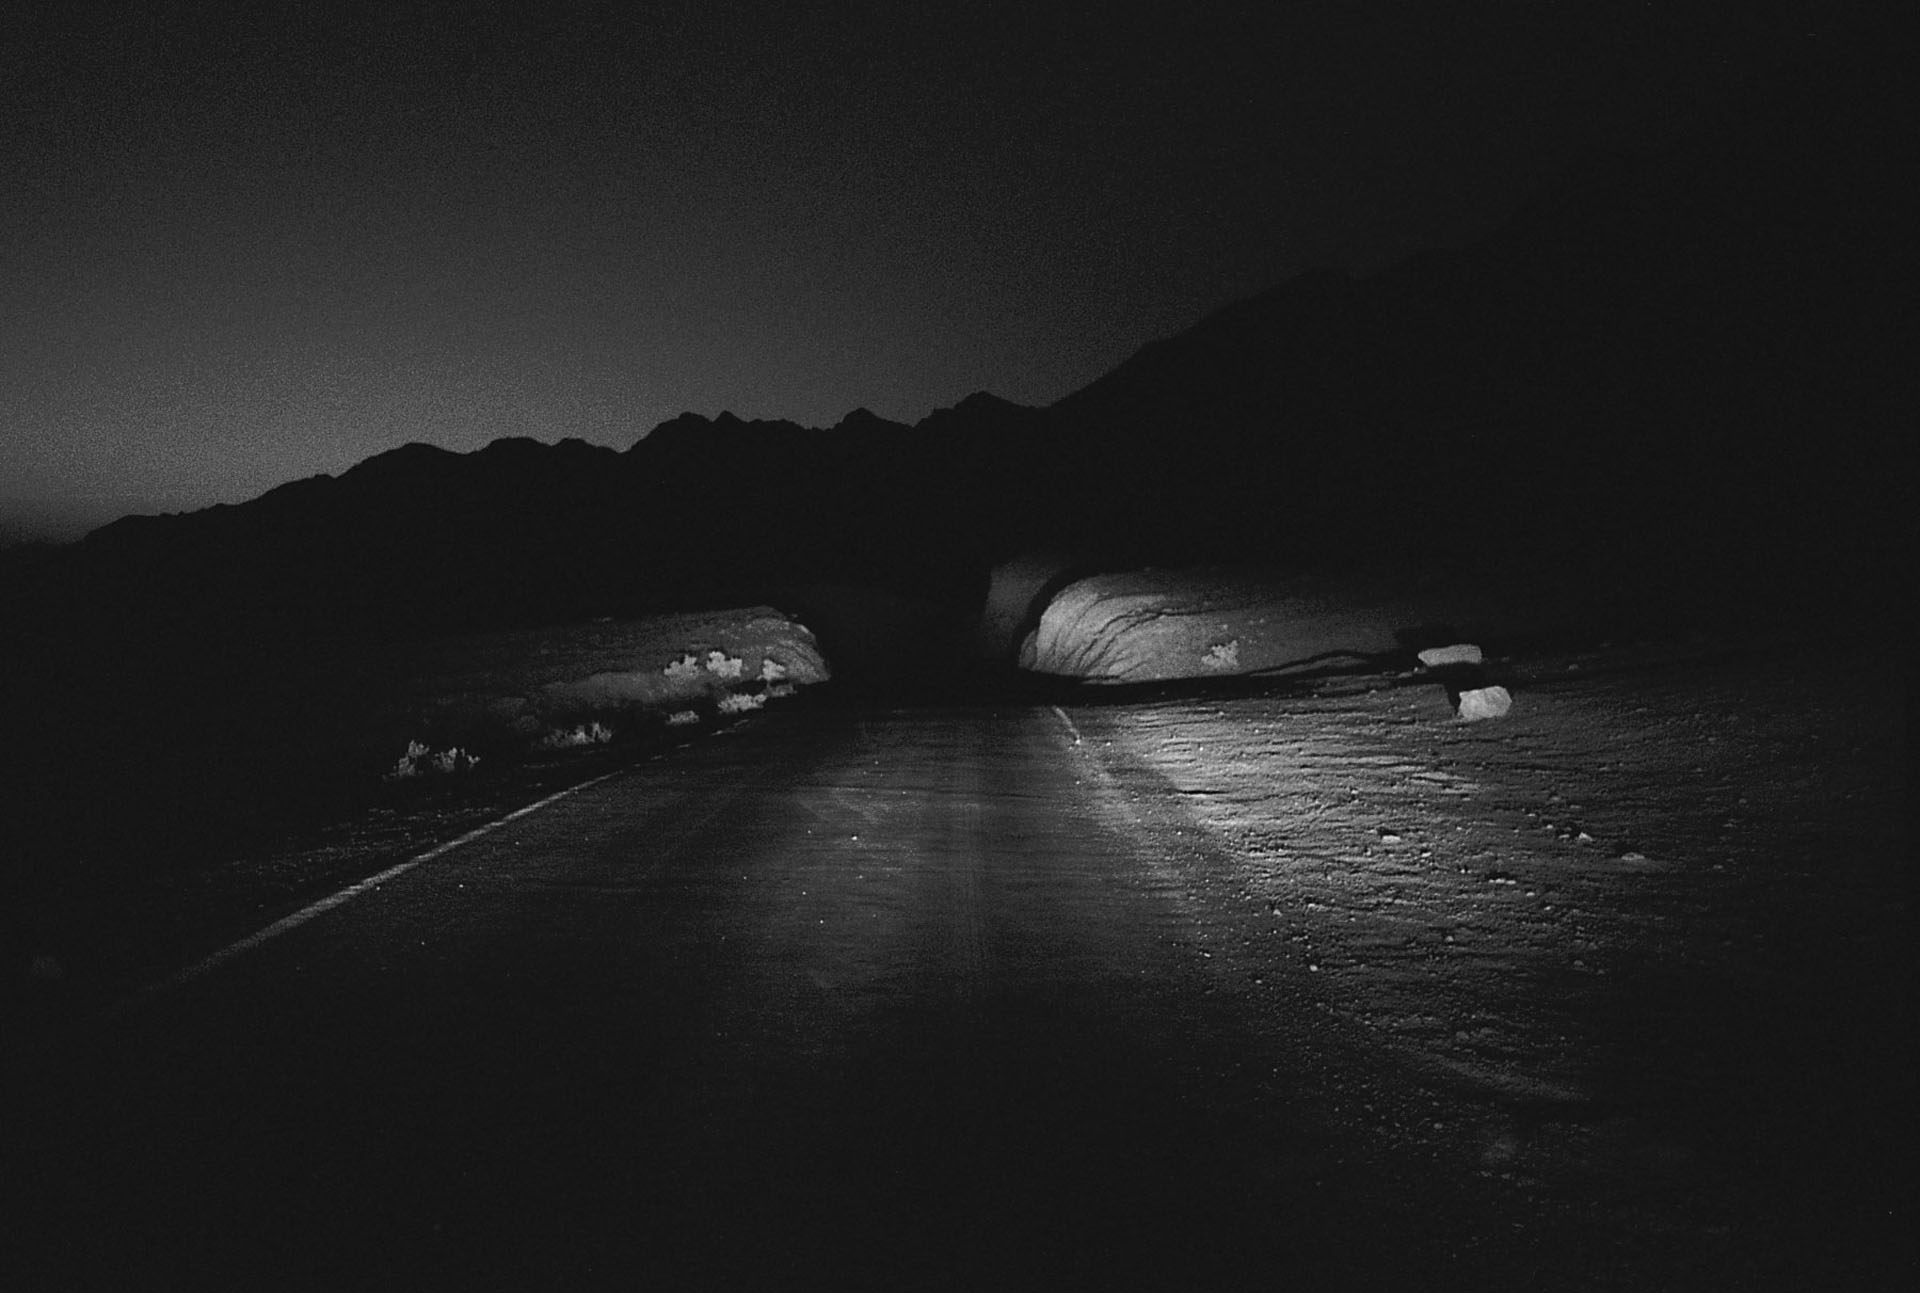 DeathValleyAtNight-19.53.2013 copy.jpg